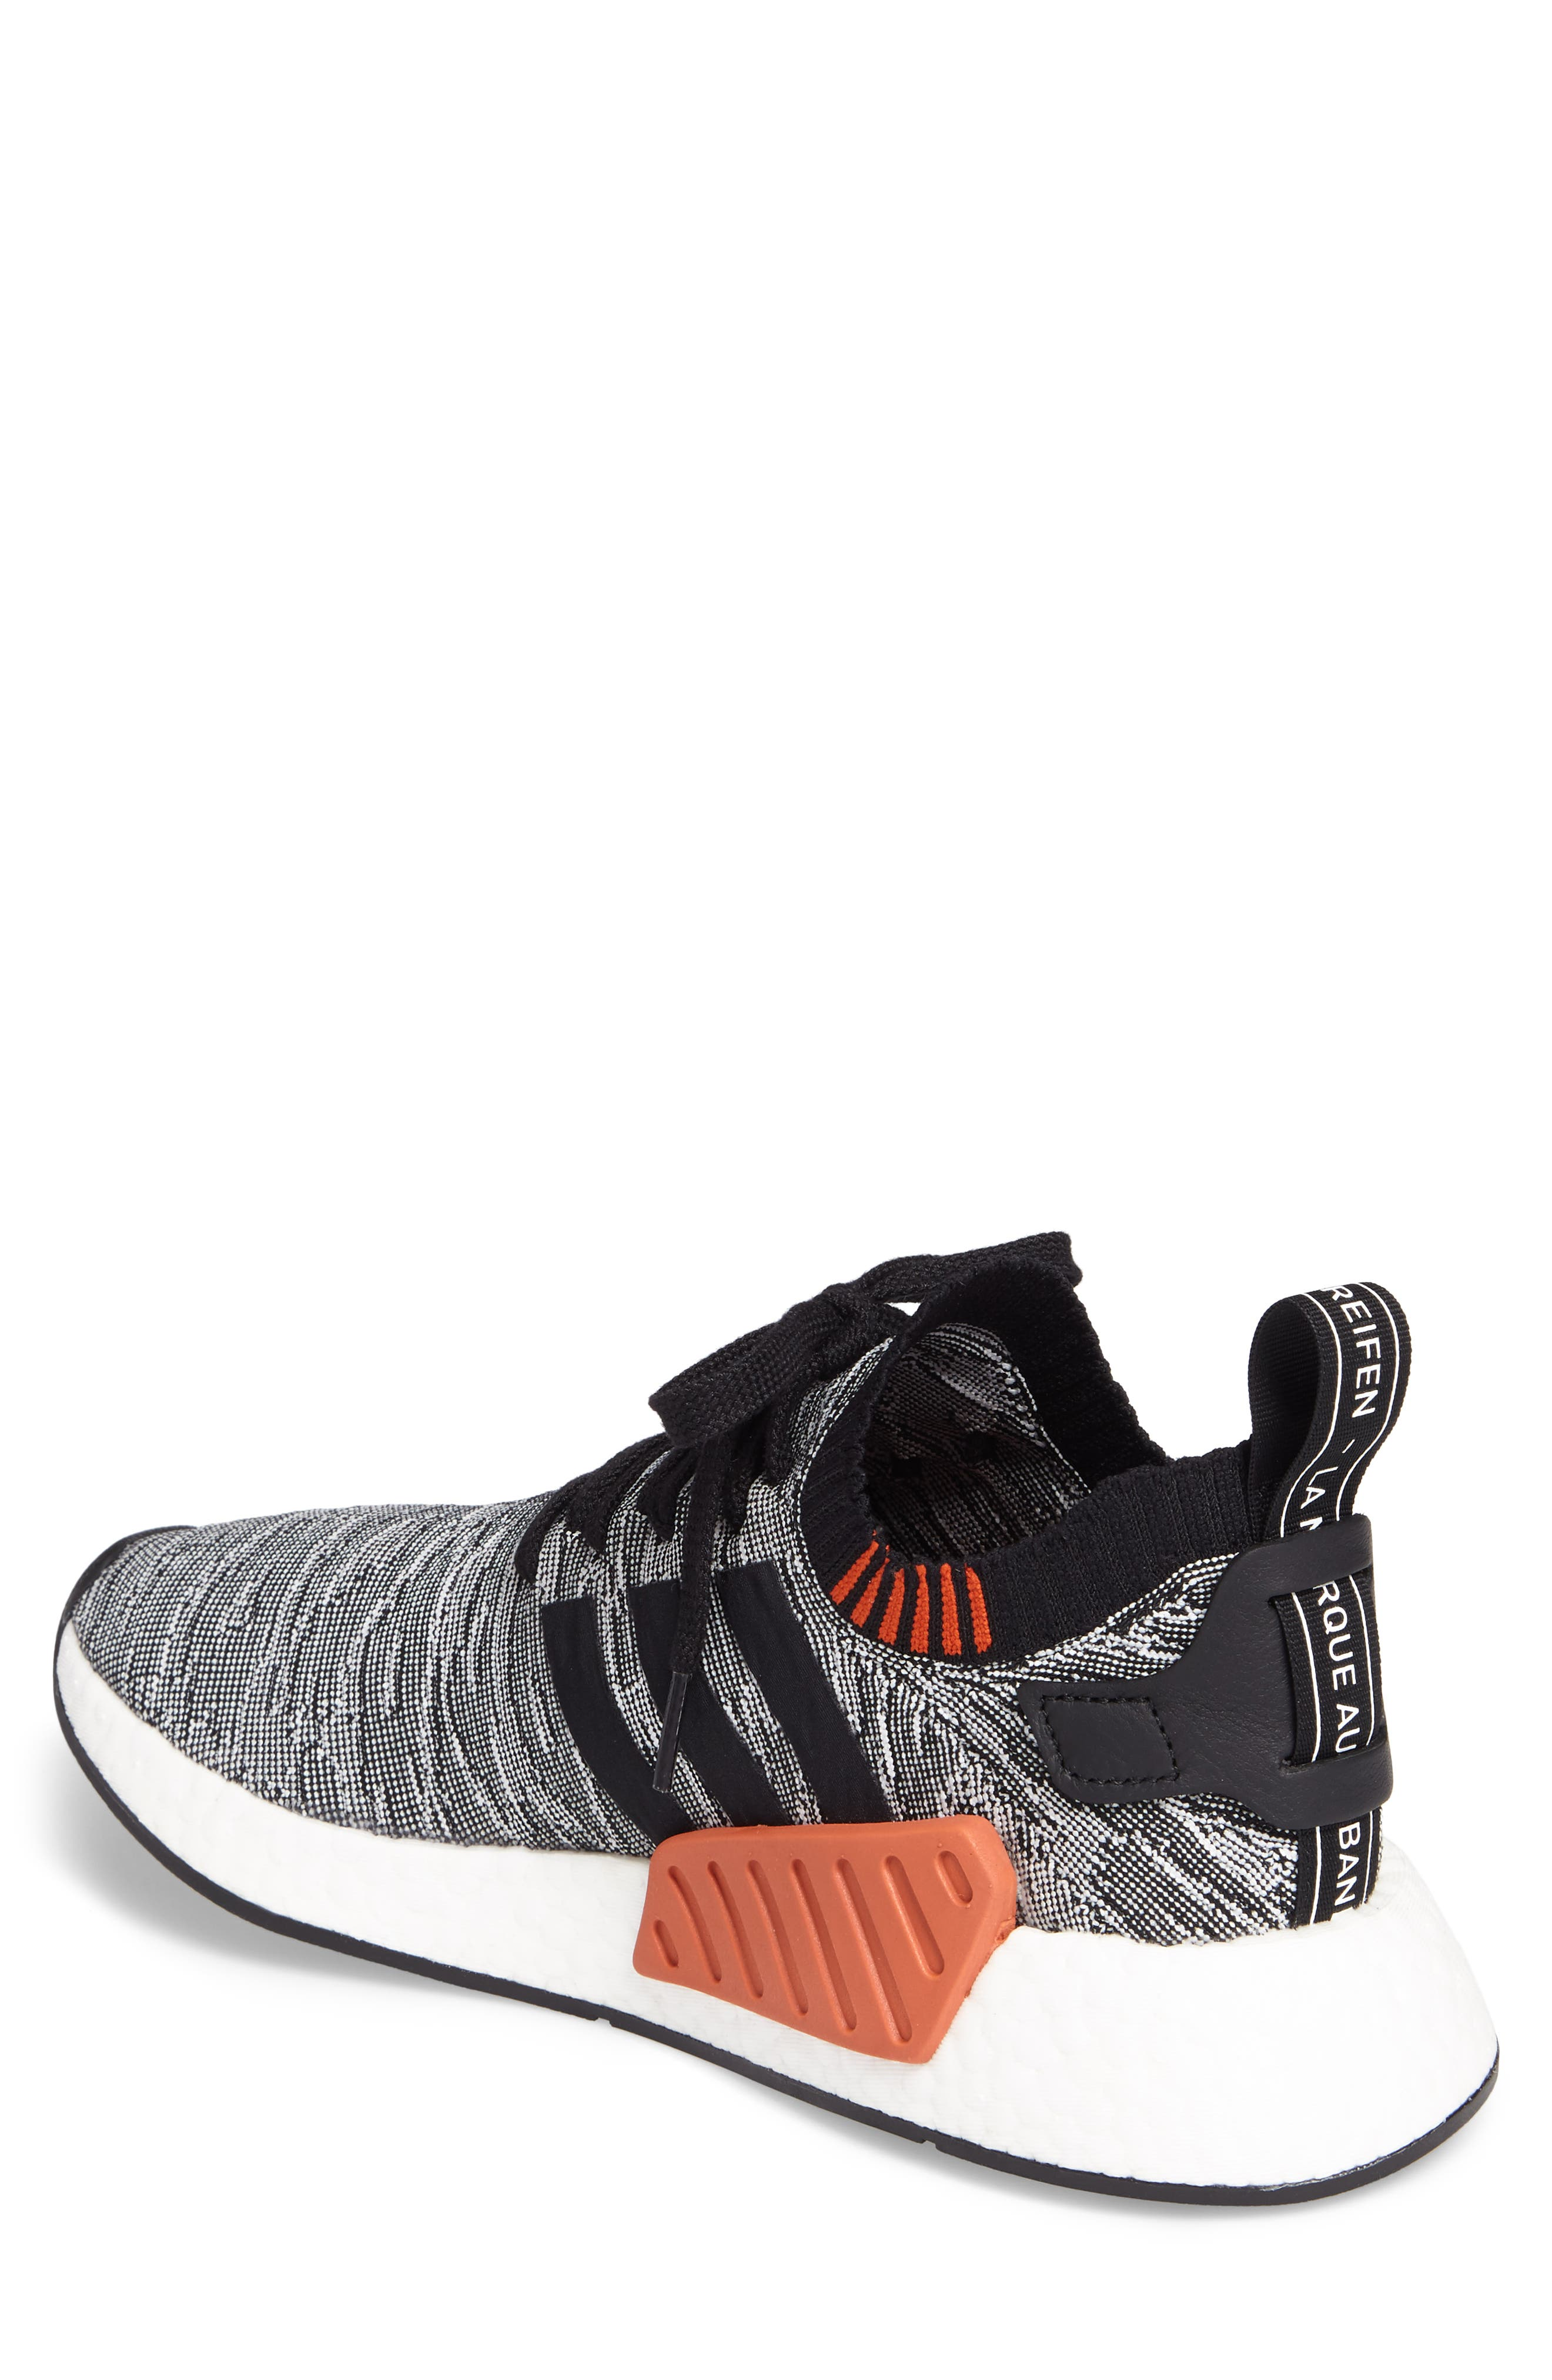 NMD R2 Primeknit Running Shoe,                             Alternate thumbnail 2, color,                             002